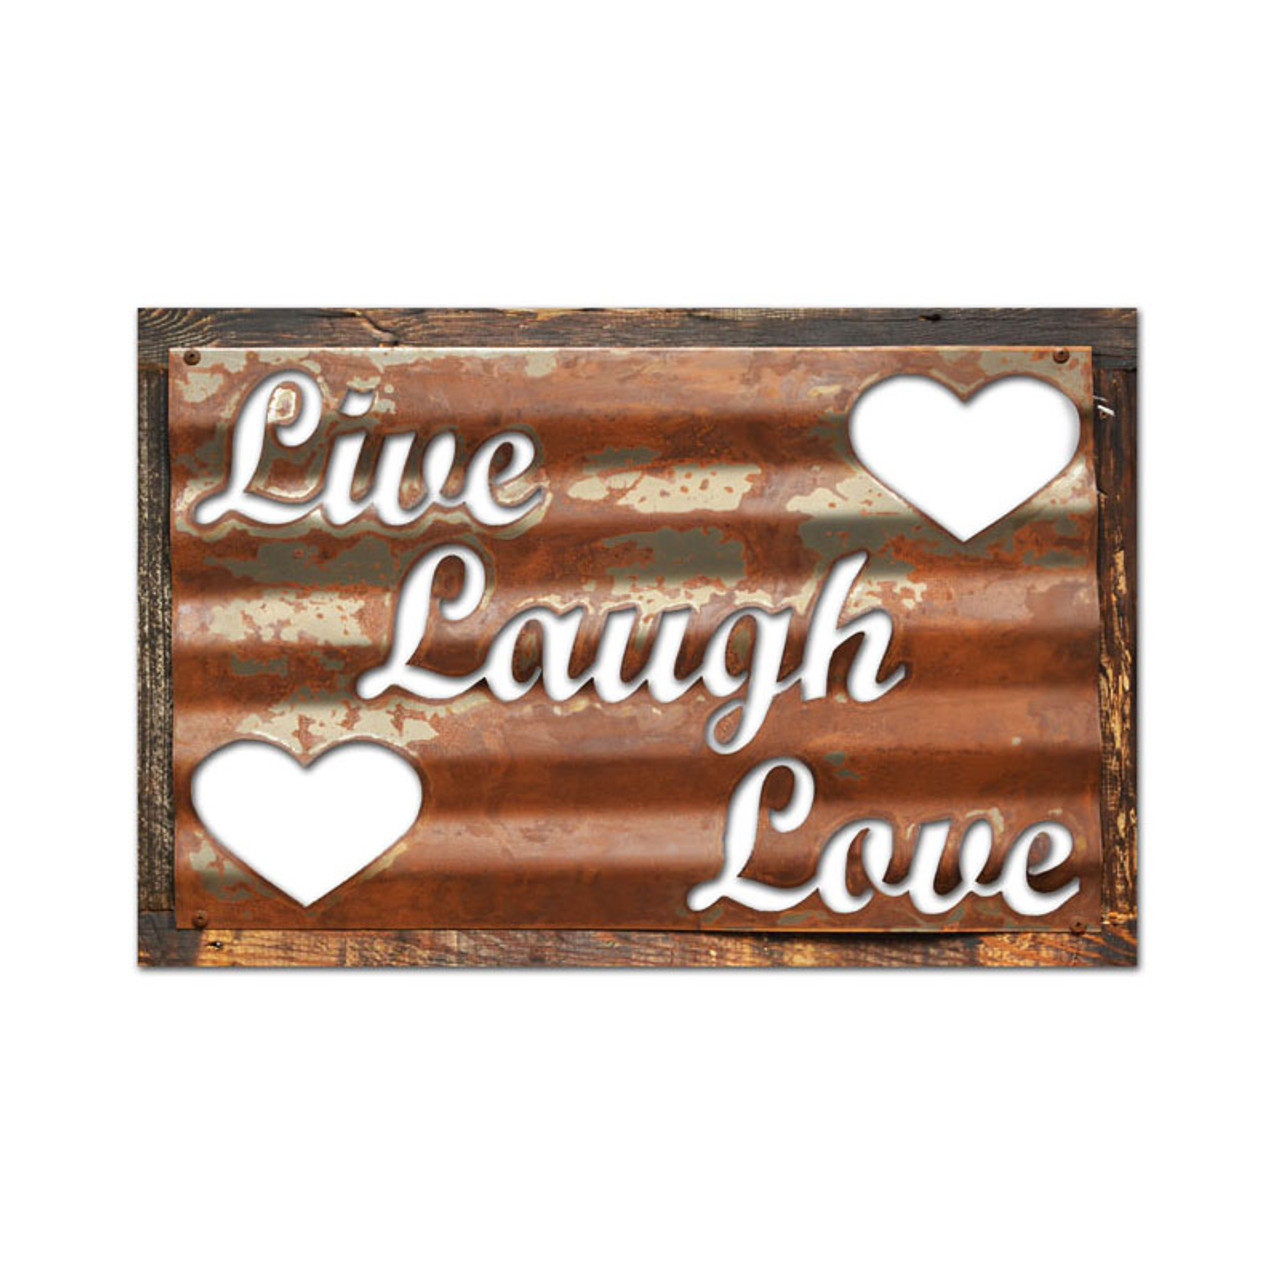 Vintage Live Laugh Love Corrugated Rustic Barn Wood Sign 19 x 26 Inch